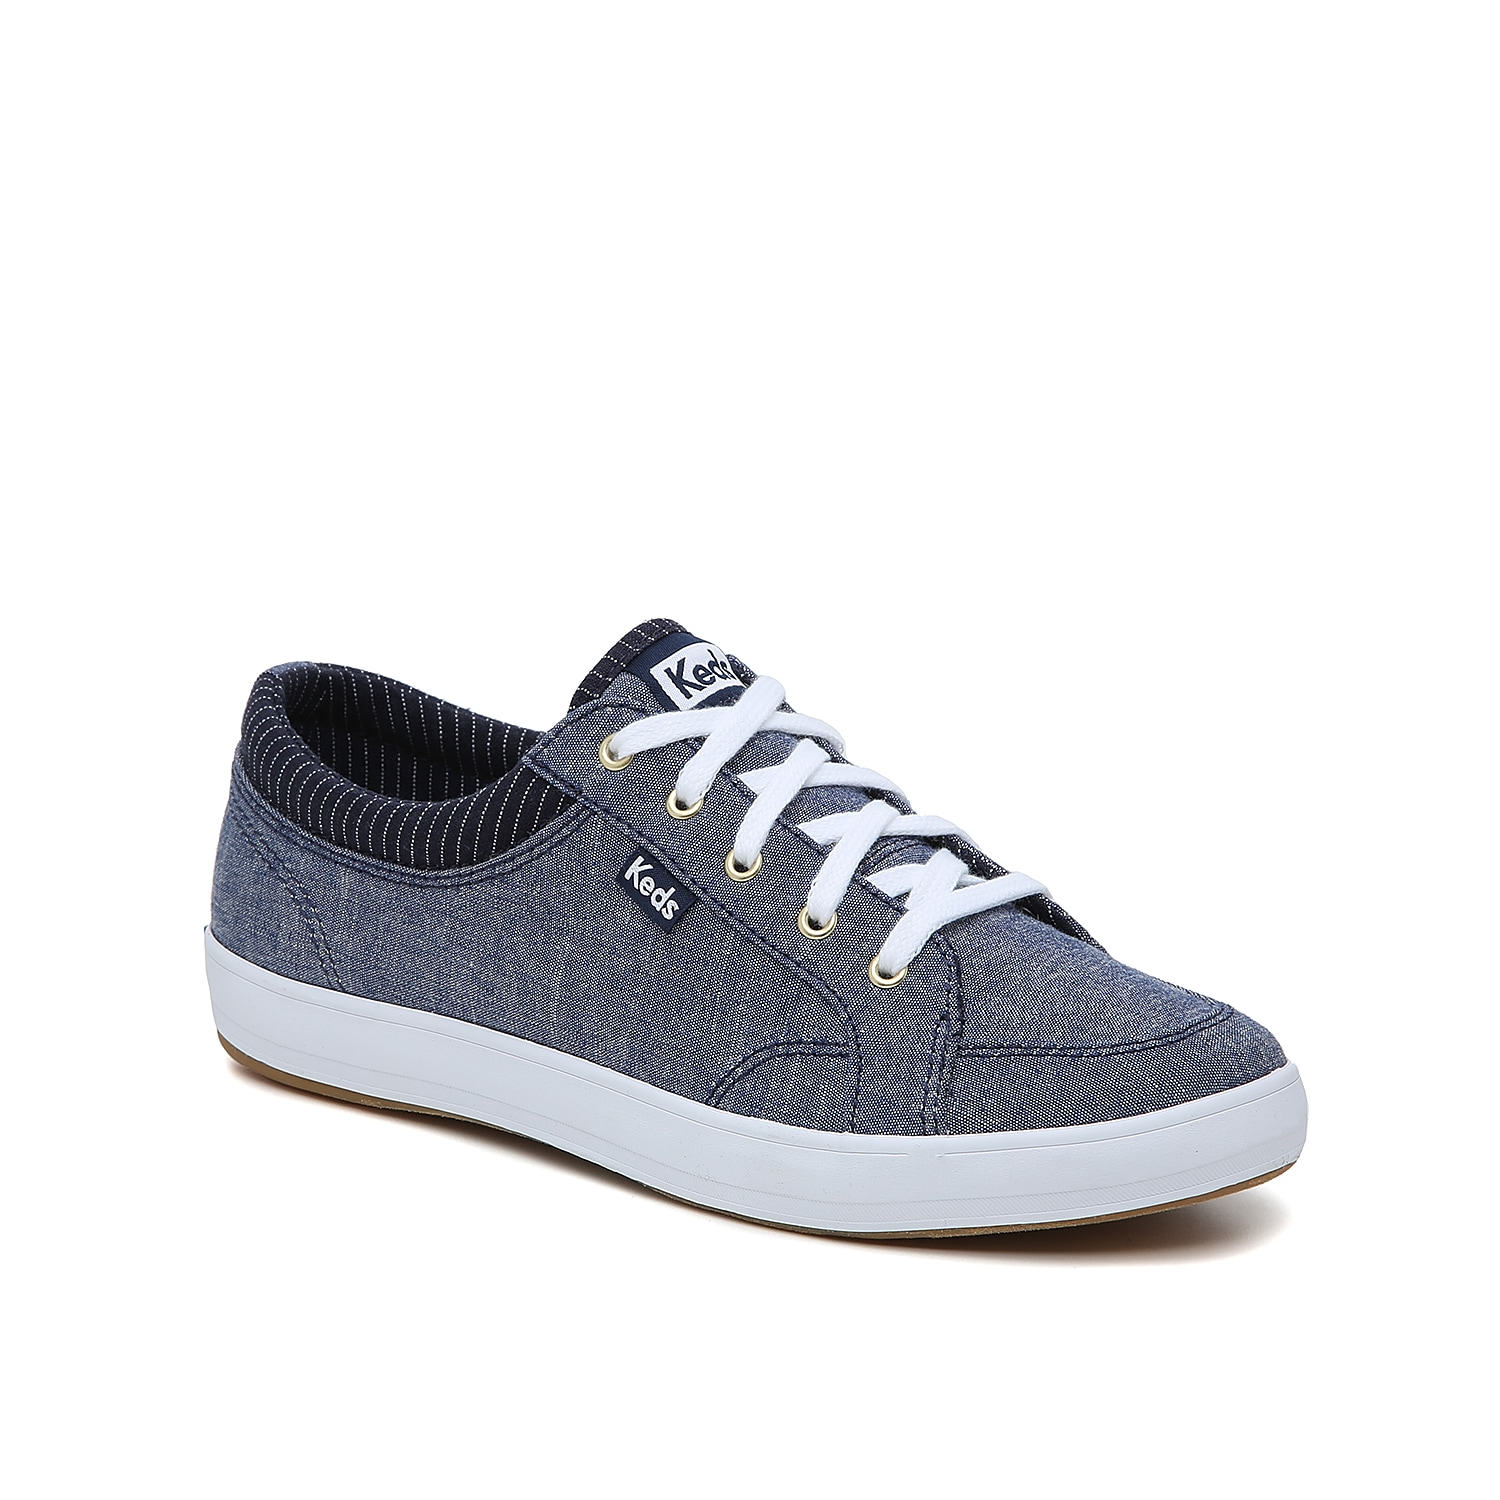 The women\\\'s Center sneaker from Keds will take your casual look up a notch in no time. These lace-ups feature chambray-style canvas to bring relaxed vibes to jeans or a T-shirt dress.